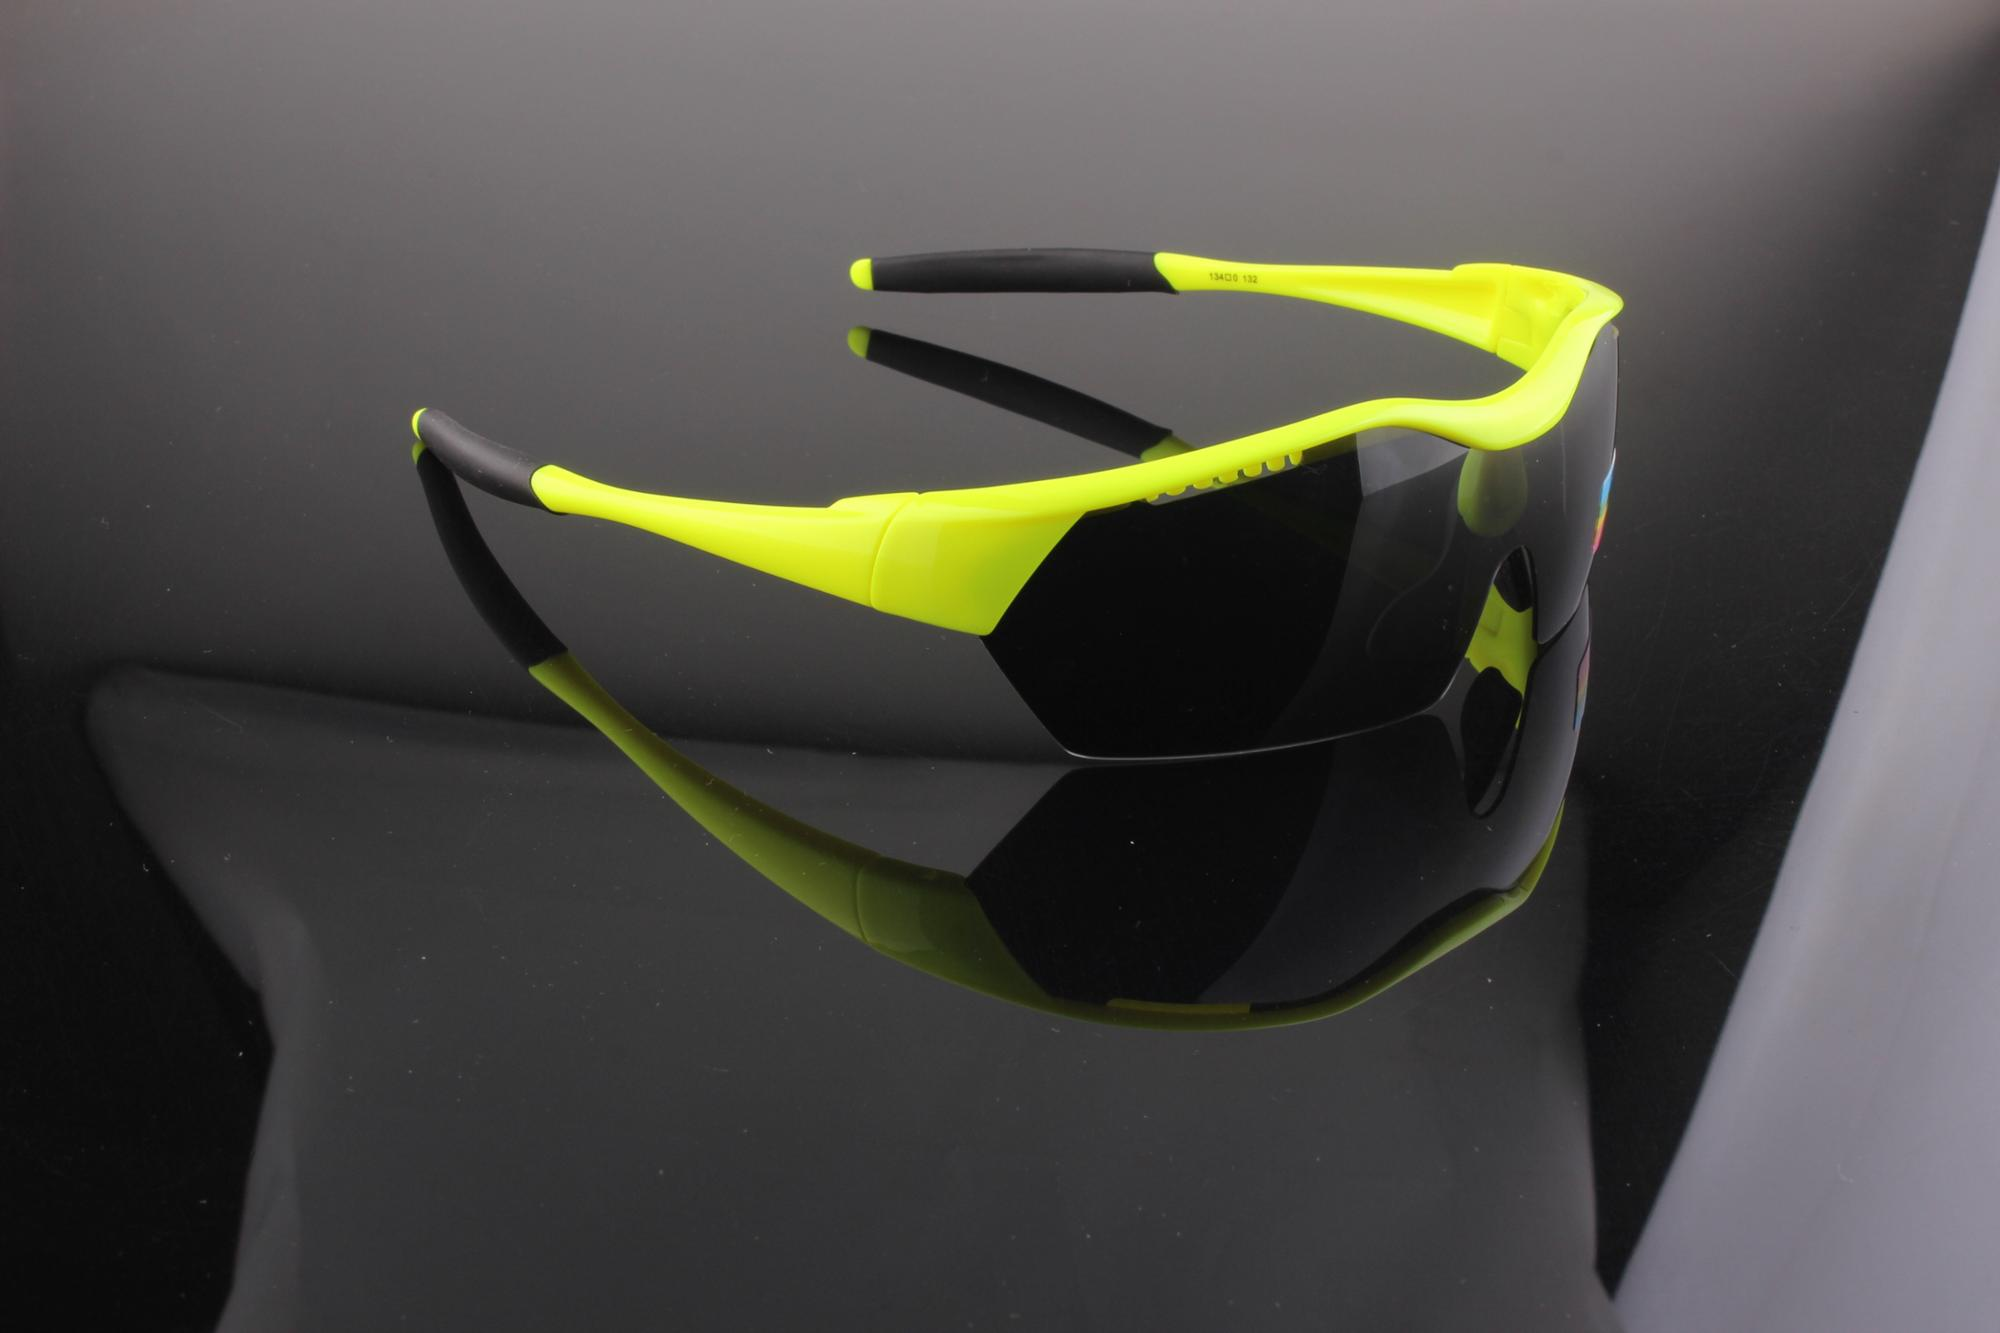 2018 New models wholesale Polarized sport sunglasses Cycling sunglasses 100%UV400 Protection